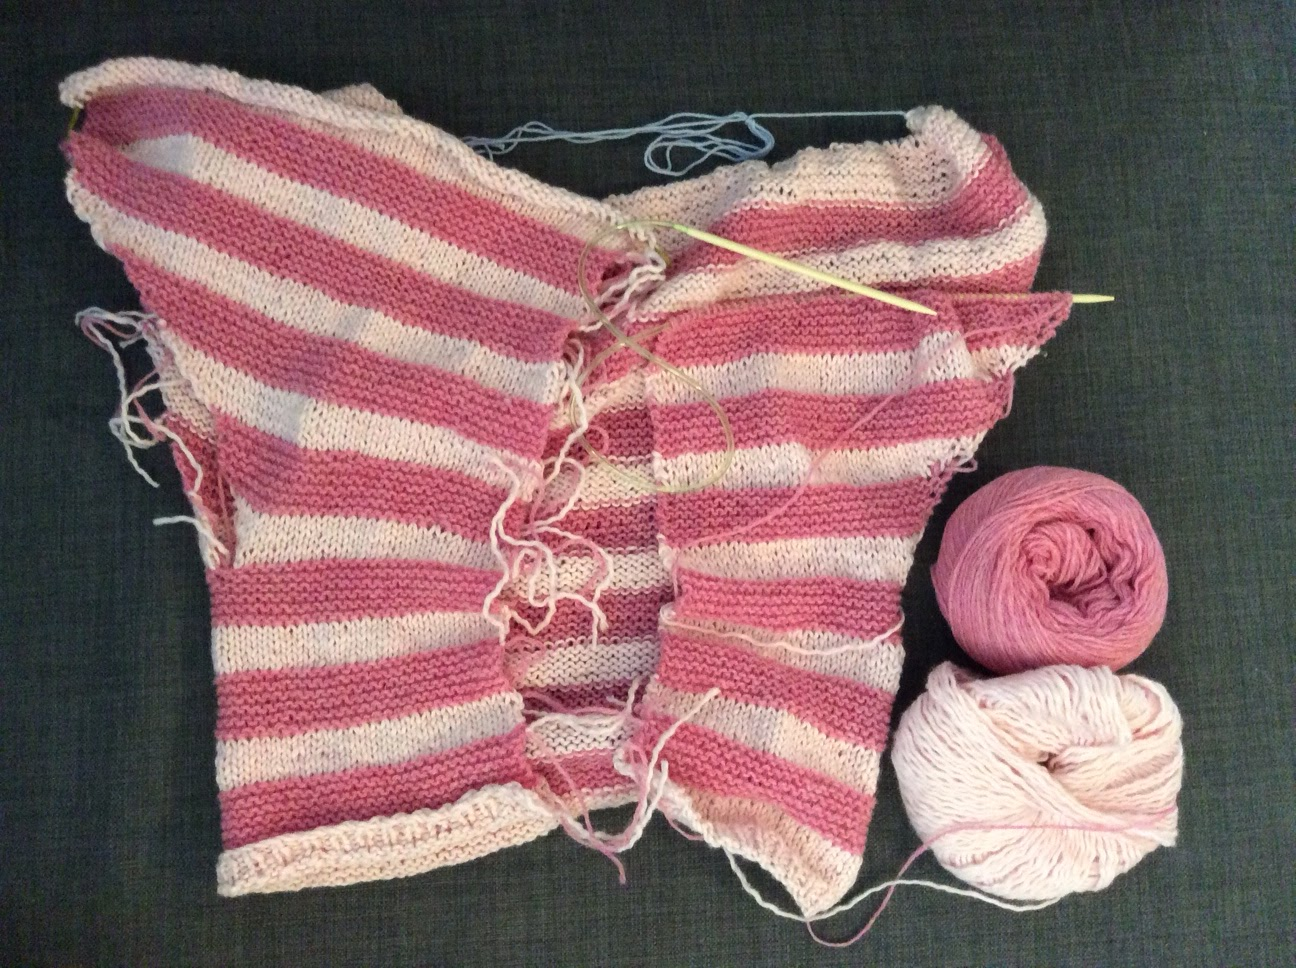 Knitting Picking Up Stitches Under Arm : sentimental-bunny-chan: Vilje Gj?r ting hun ikke kan